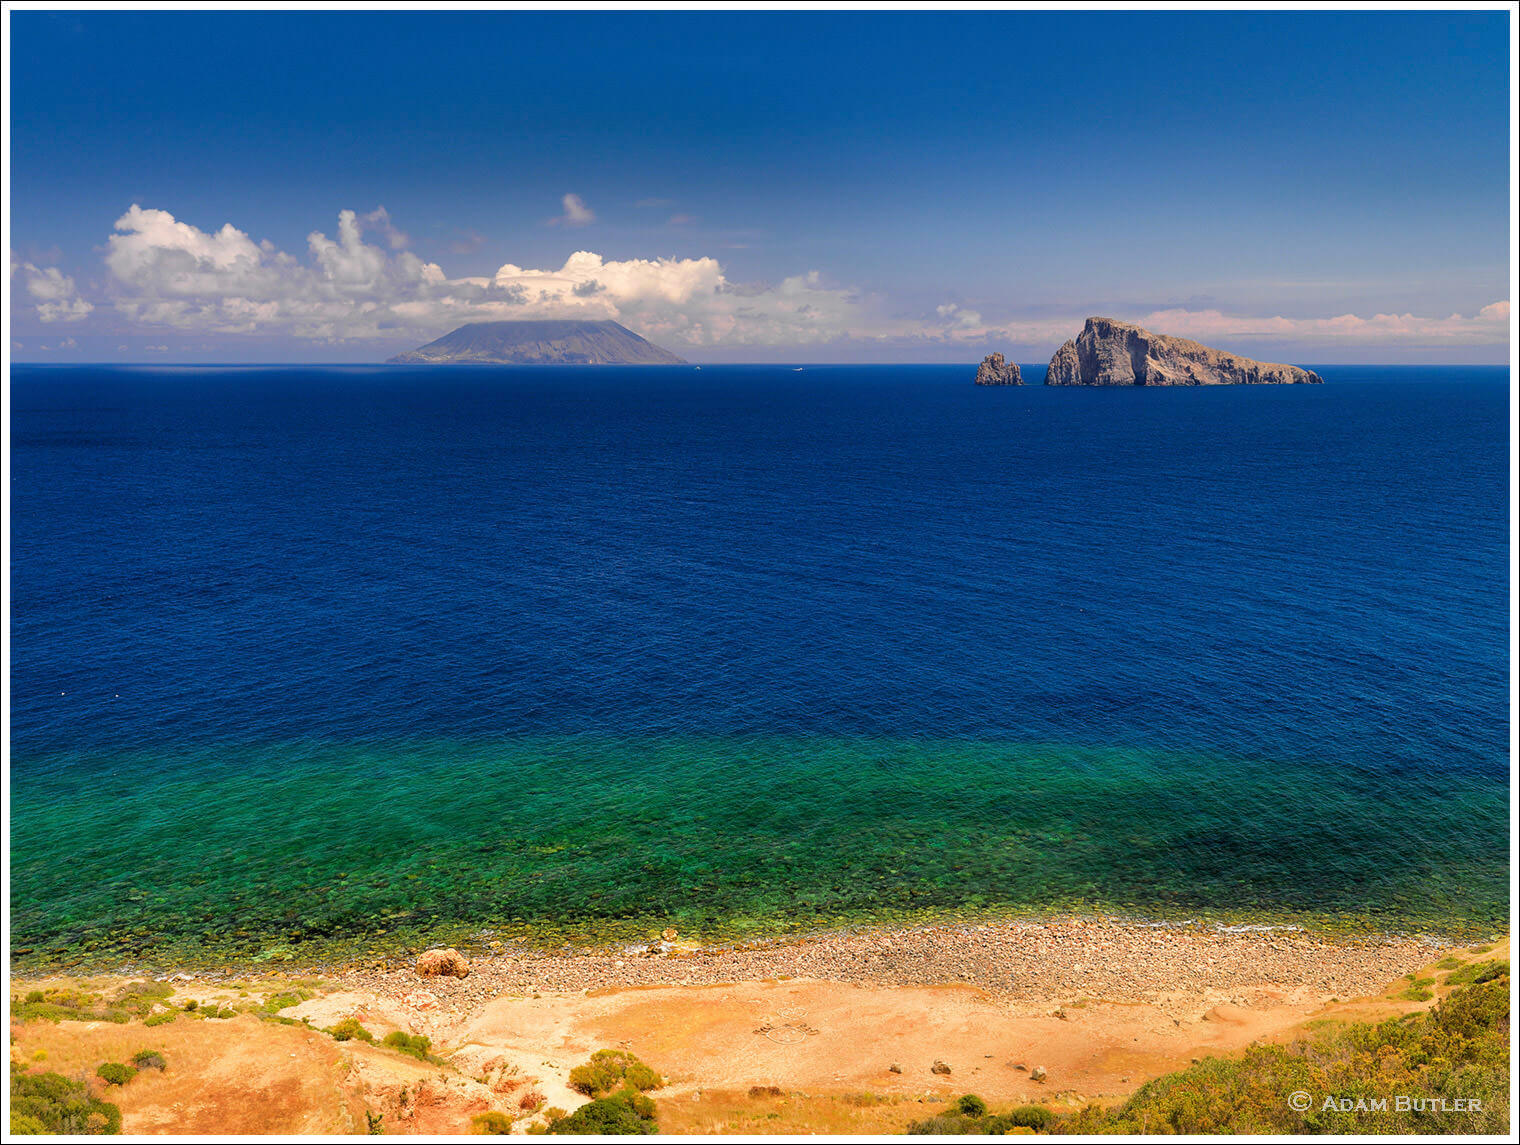 A Mare Isole Eolie Worldrise 1